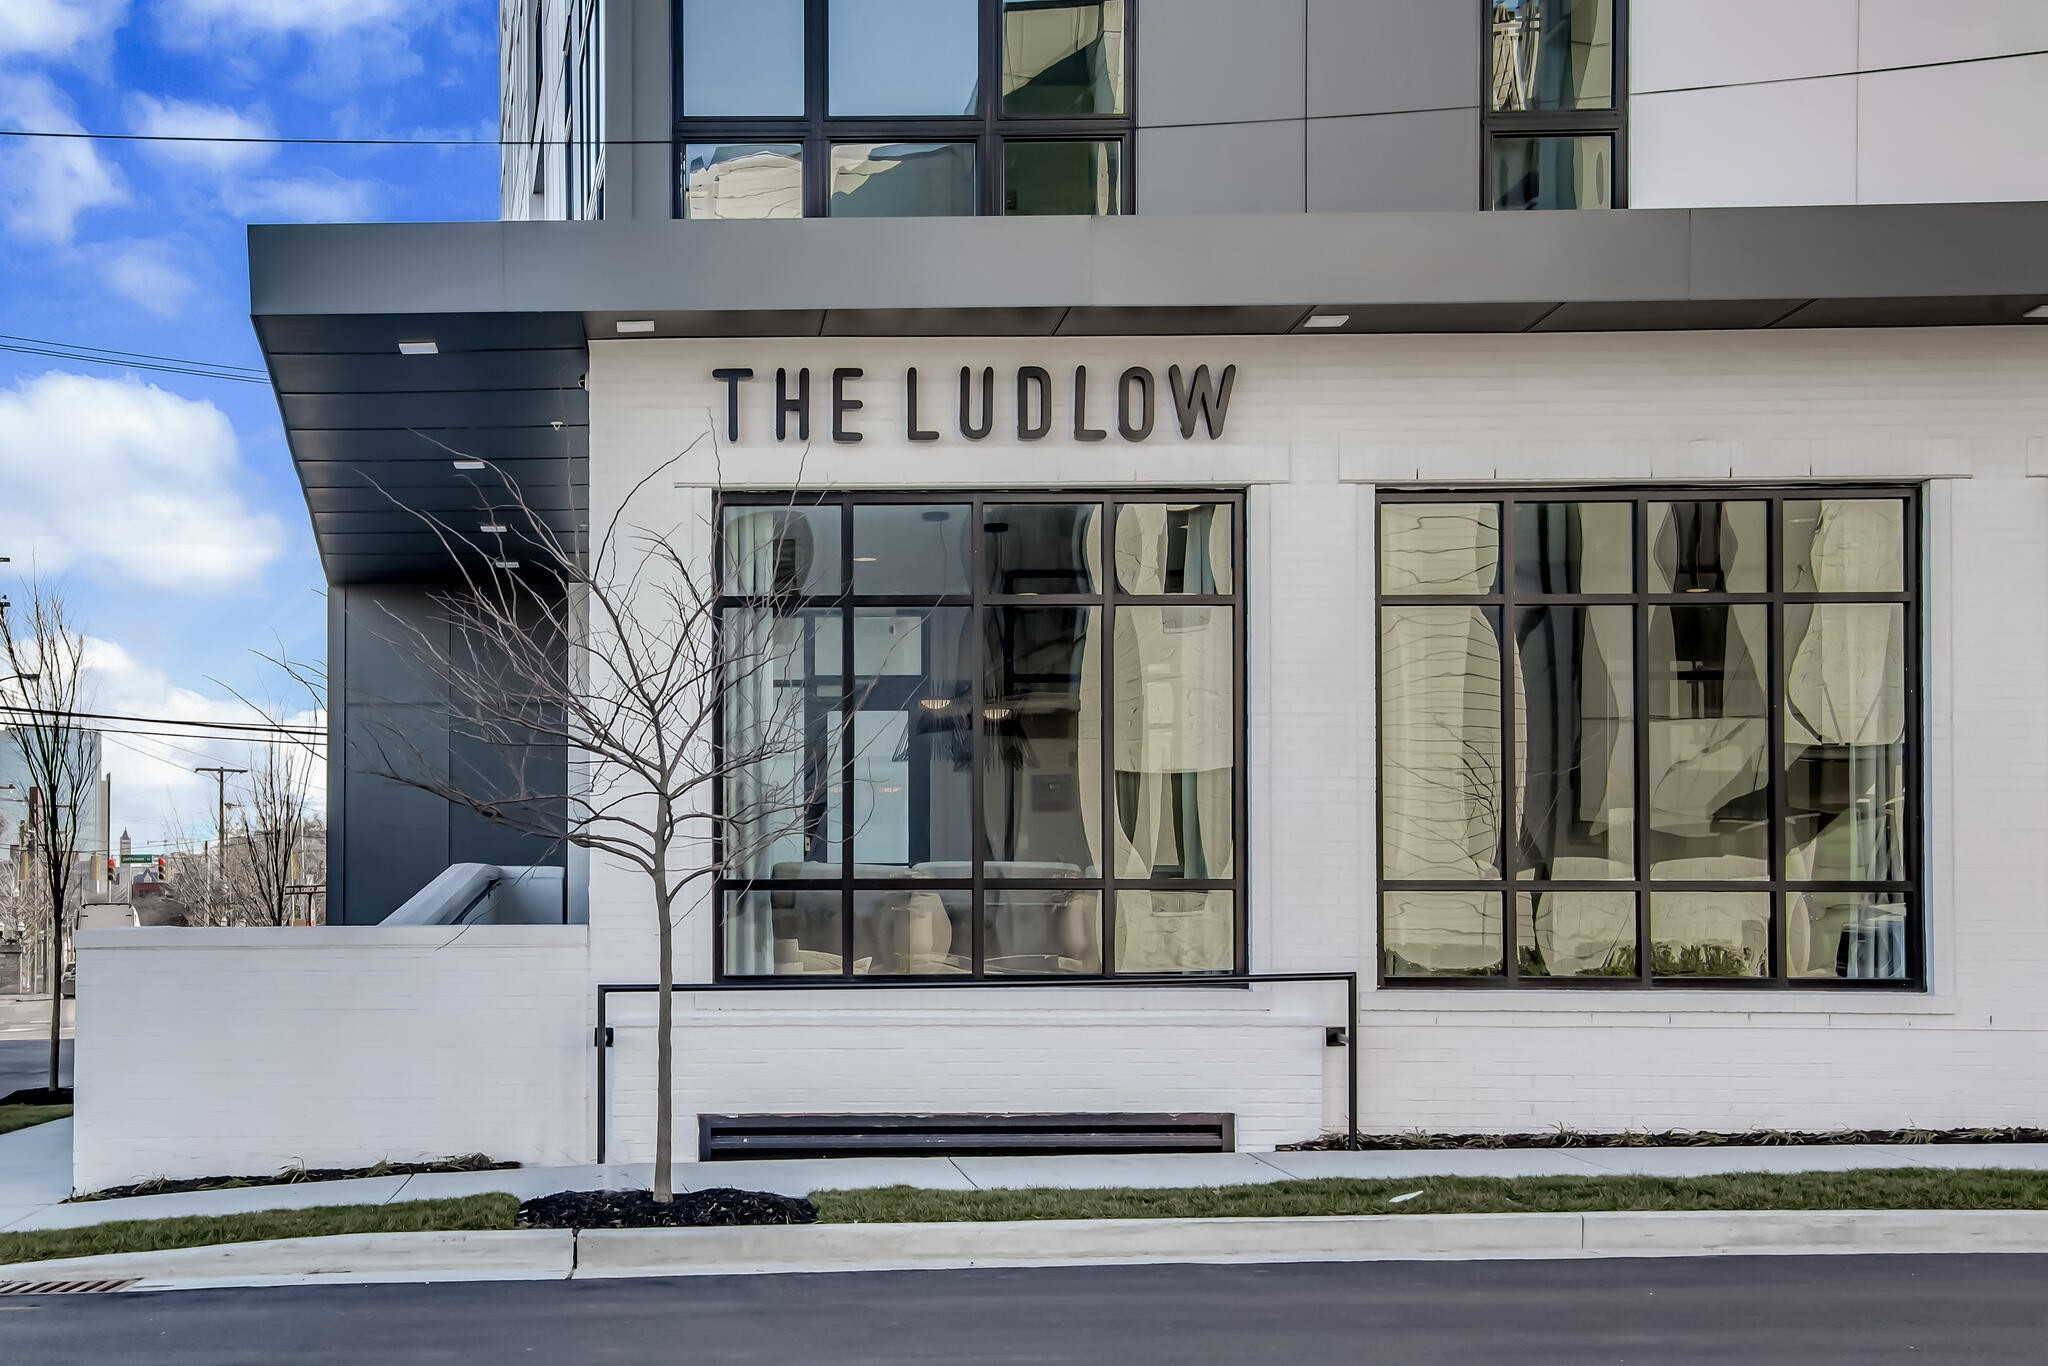 Announcing The Ludlow - 64 contemporary residences in Historic Buena Vista. Carefully curated finishes including sleek cabinetry, wood flooring & quartz countertops. Common rooftop deck with amazing views of Nashville's burgeoning skyline. WiFi controlled thermostats, latch smart locks w/ Sonos speaker integration, optional parking lifts & area designed to accommodate Nashville's first-ever drone delivery landing pad. Priced from the mid $200s - high $500s. Delivery slated to commence this Fall